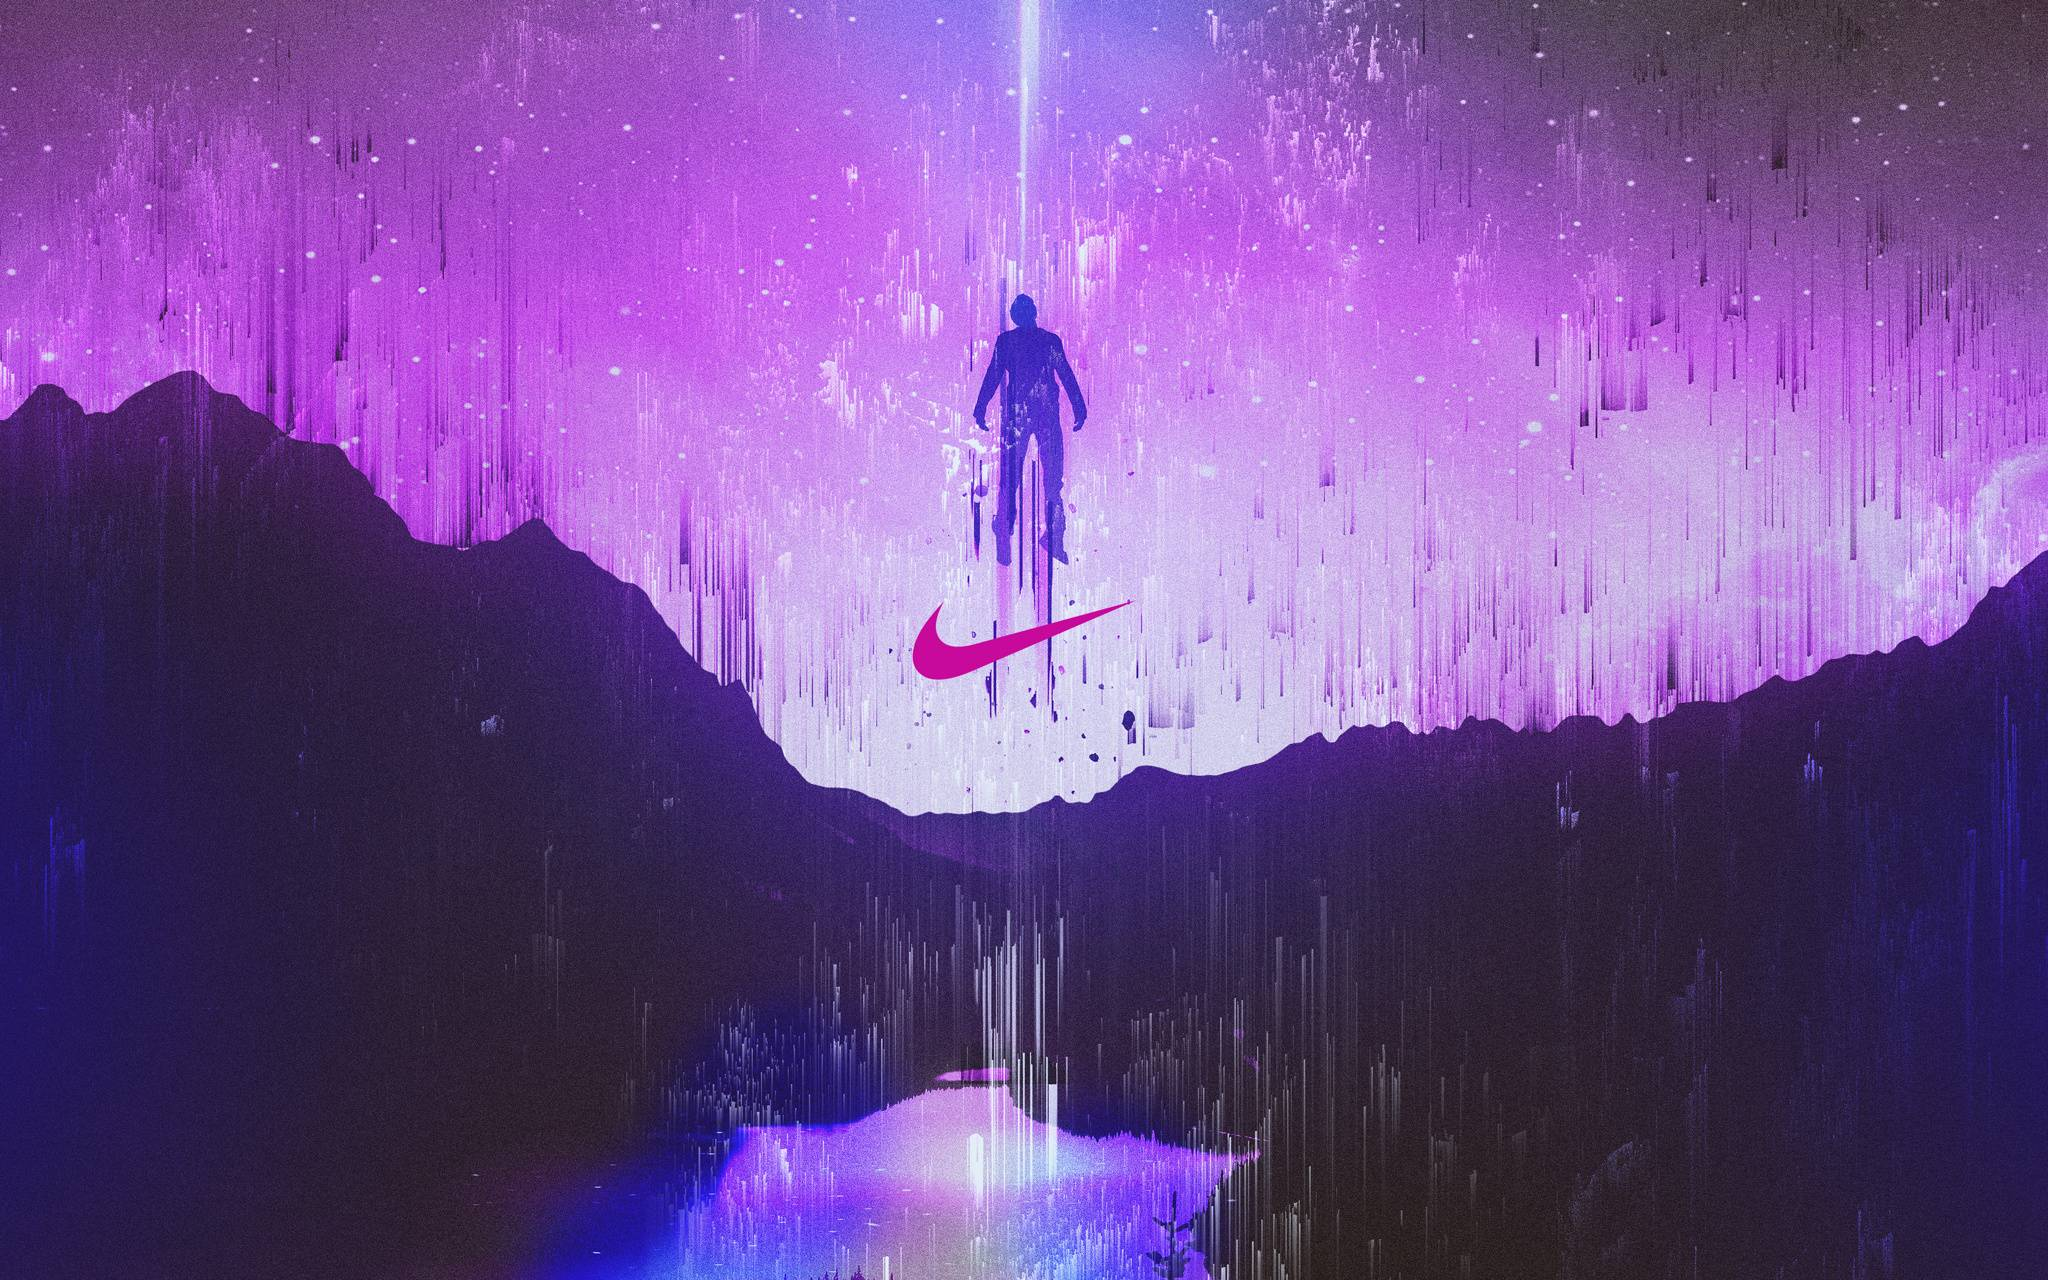 Aplicado Fortalecer Afirmar  Nike Abstract wallpaper by Aztr0 - 56 - Free on ZEDGE™